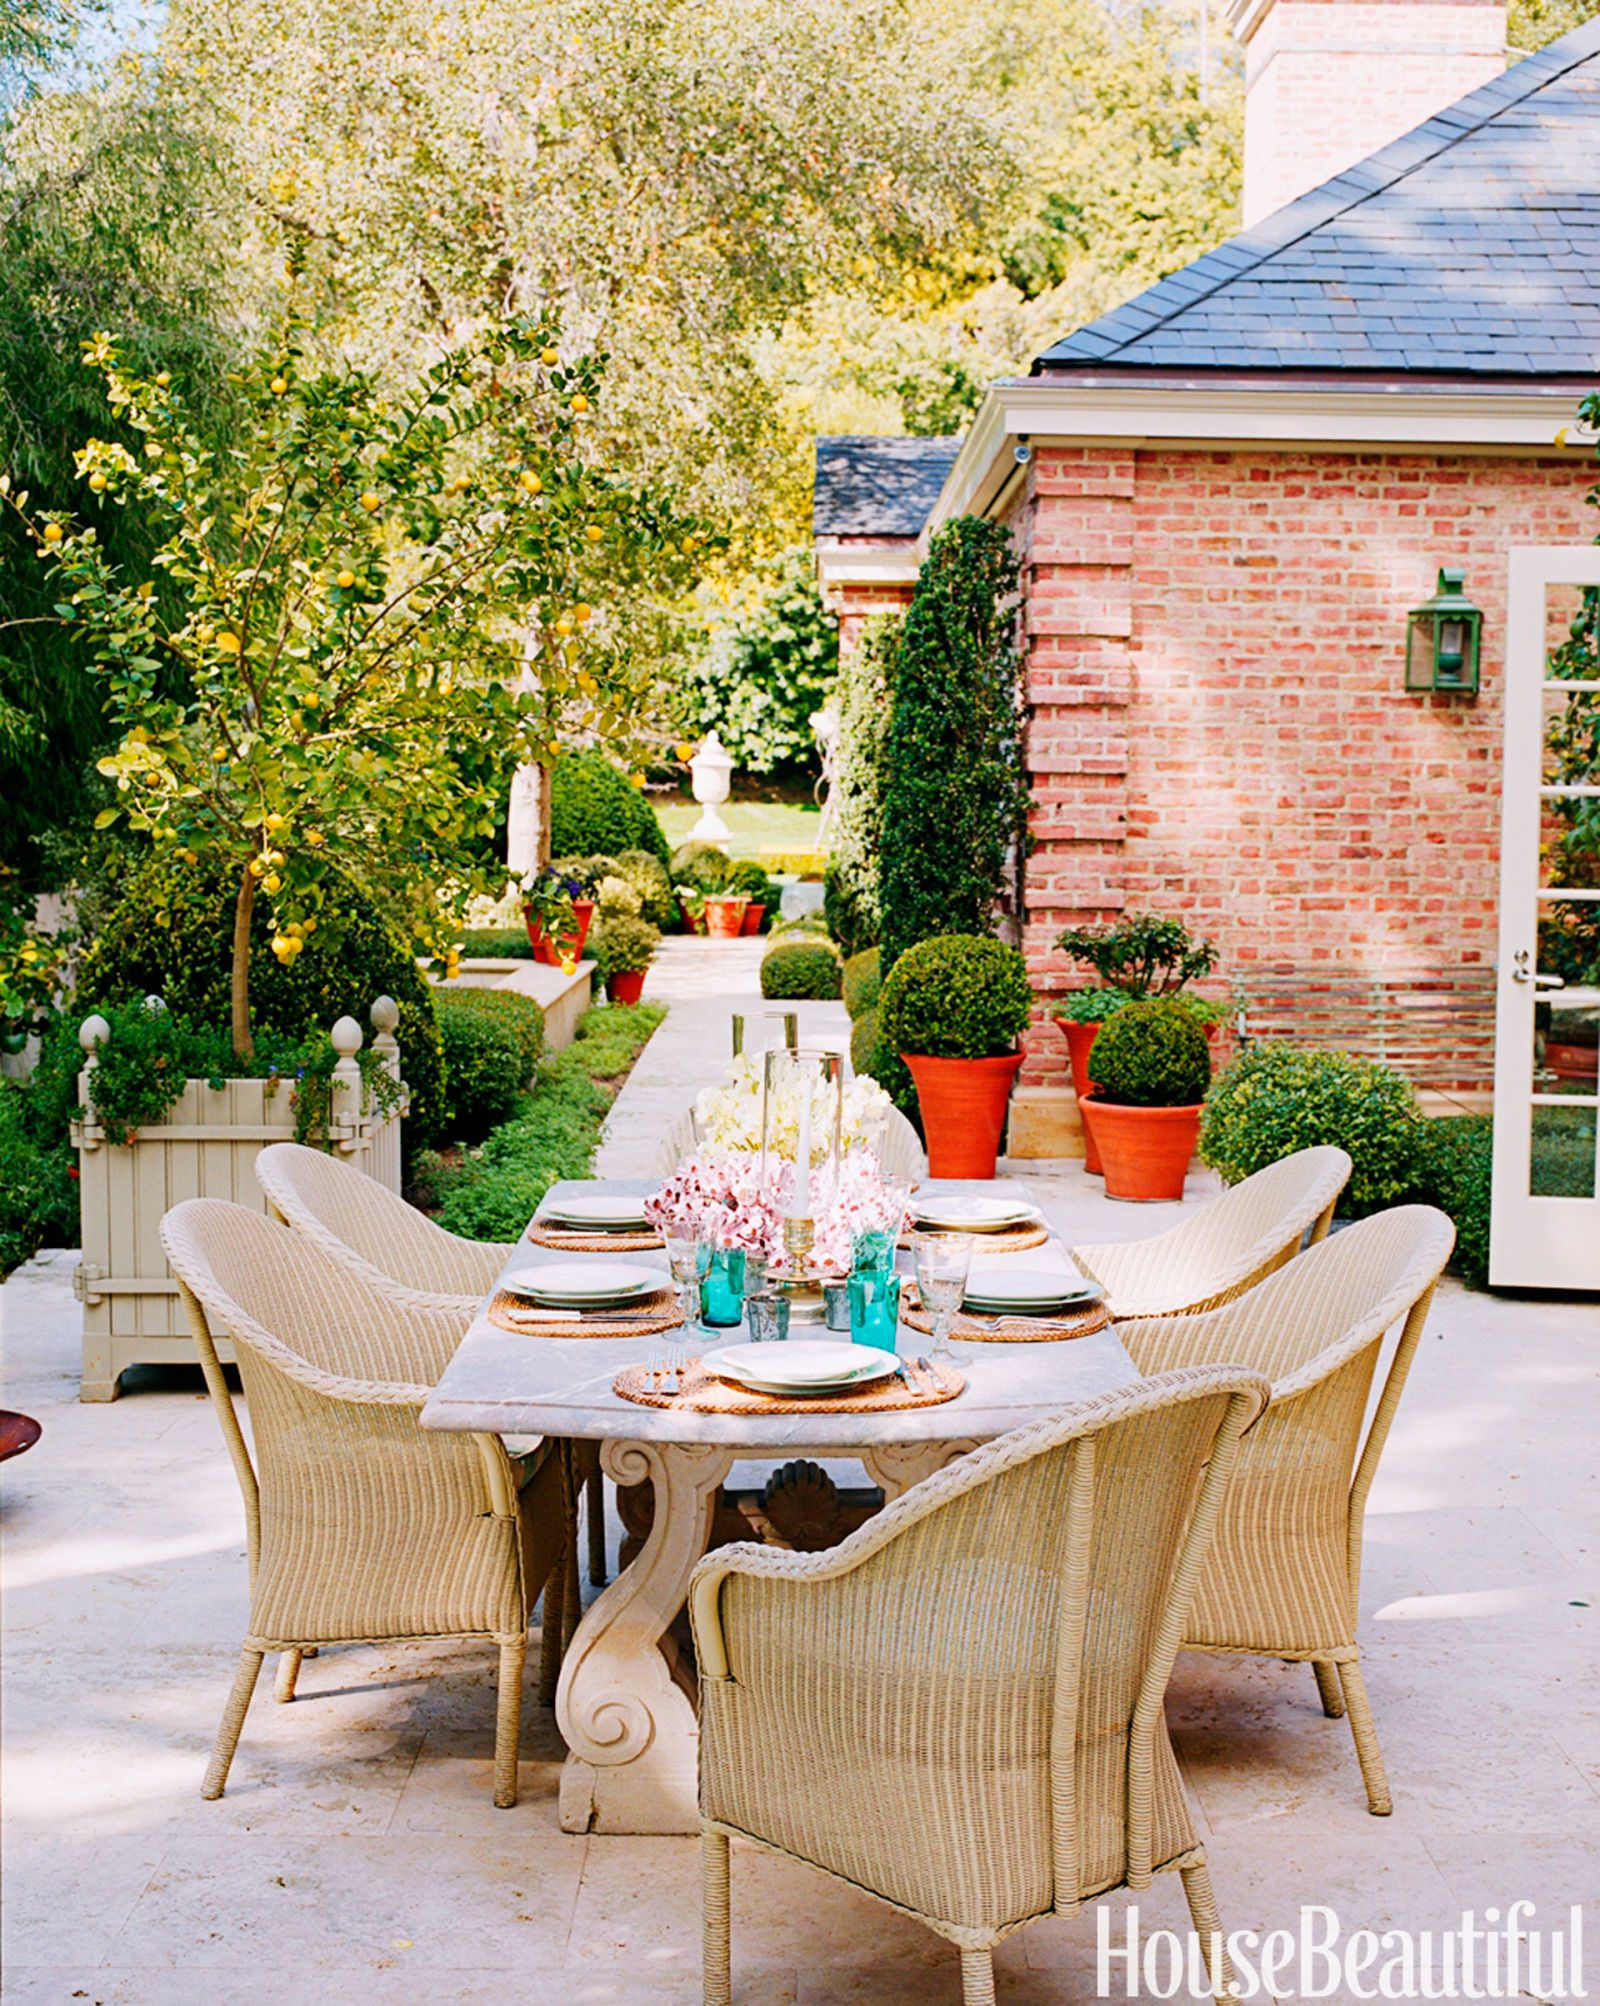 10 Designersu0027 Chic Outdoor Dining Spots